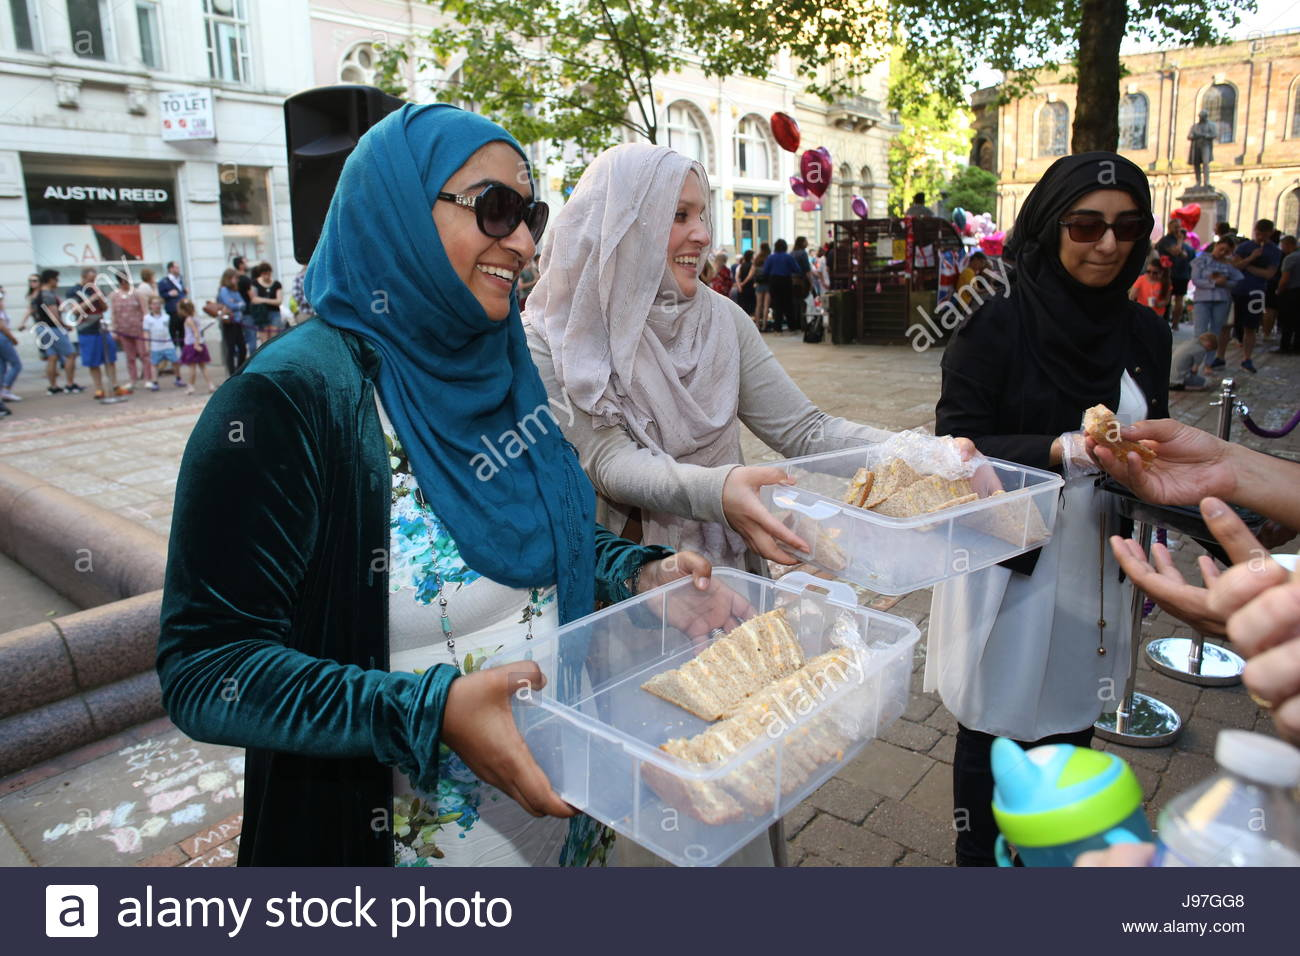 Women in St Ann's Square Manchester distribute sandwiches among people who had arrived to pay tribute to the - Stock Image